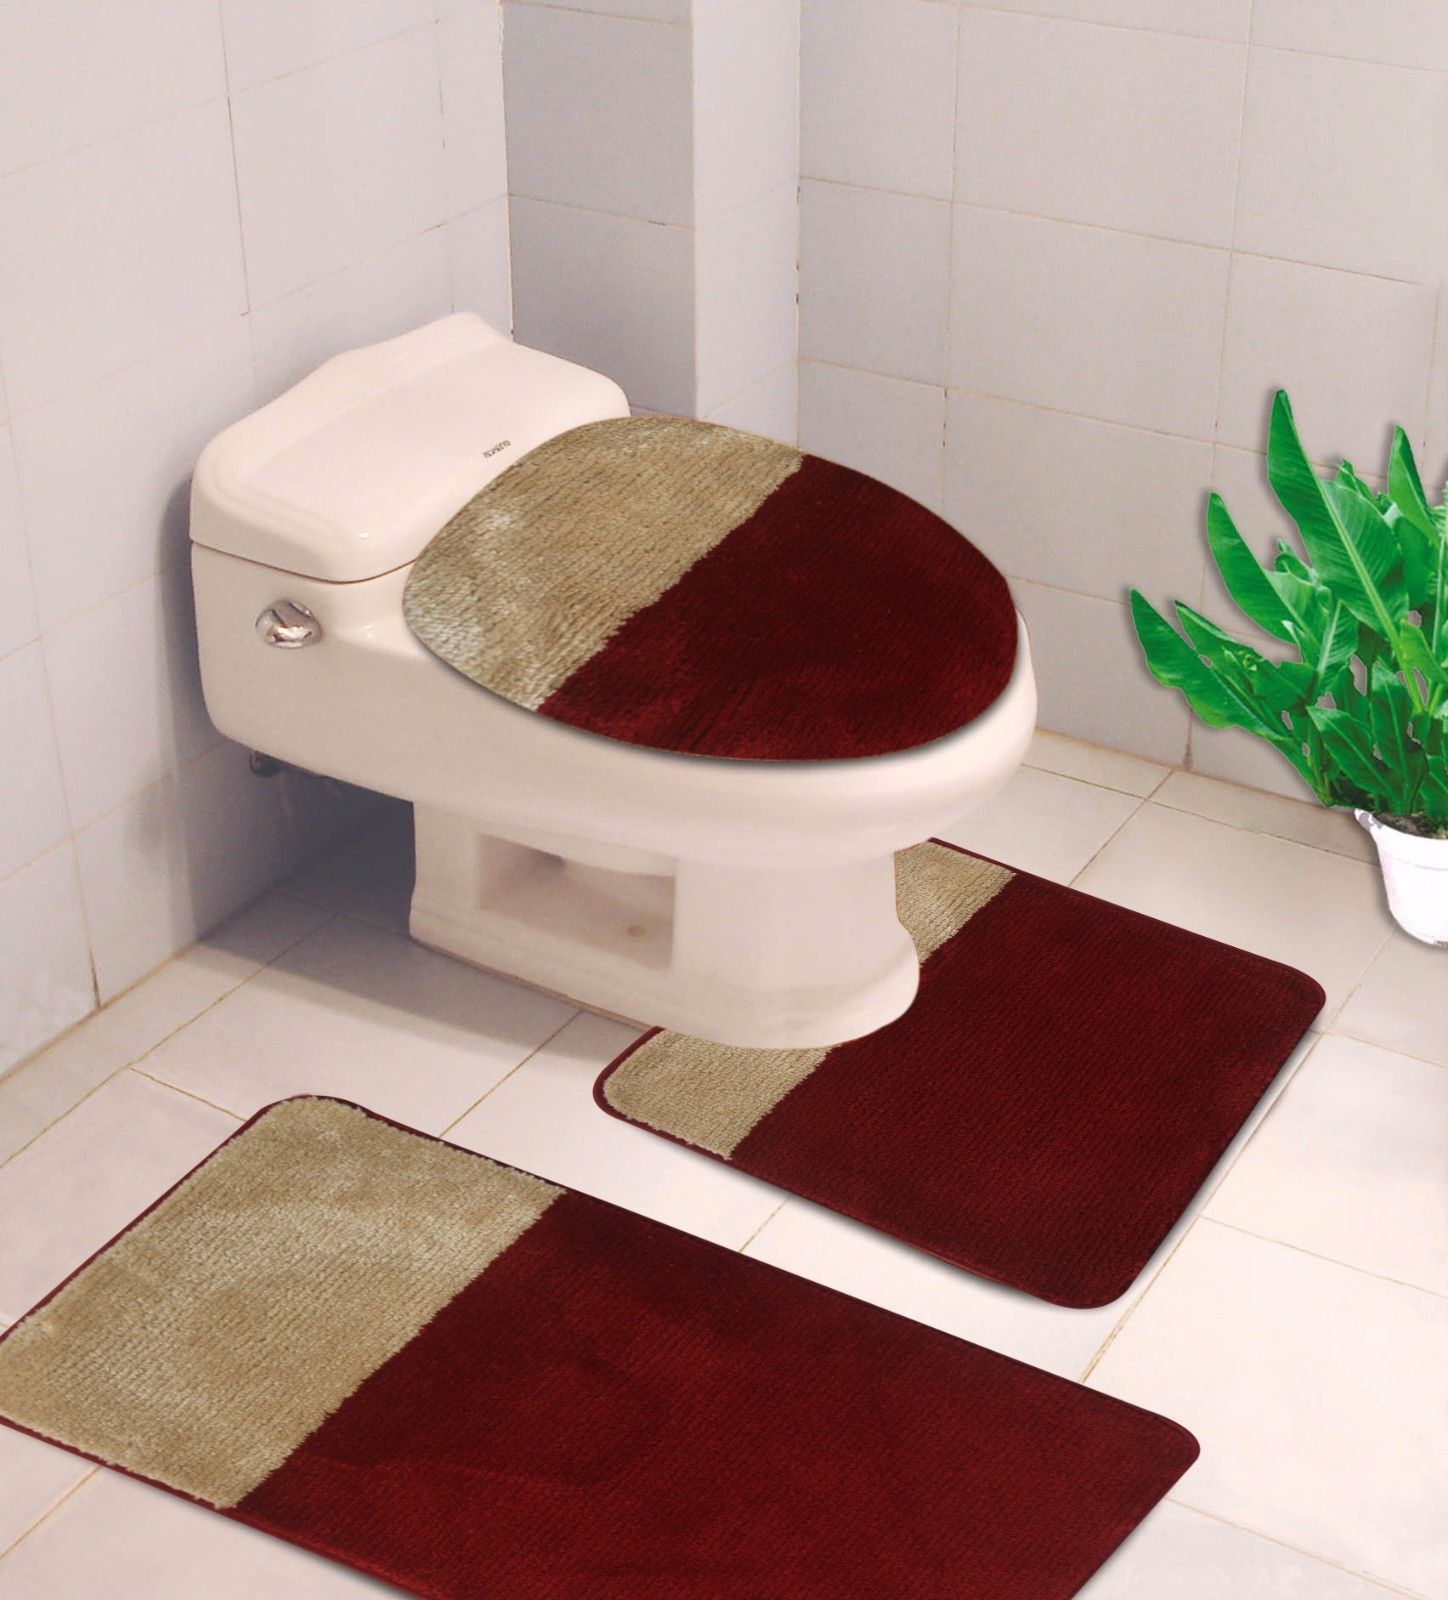 "3-PC (#7) 2 Tone Burgundy/Gold HIGH QUALITY Jacquard Bathroom Bath Rug Set Washable Anti Slip Rug 18""x28"", Contour Mat 18""x18"" and Toilet Seat Lid Cover 18""x19"" with Non-Skid Rubber Back"